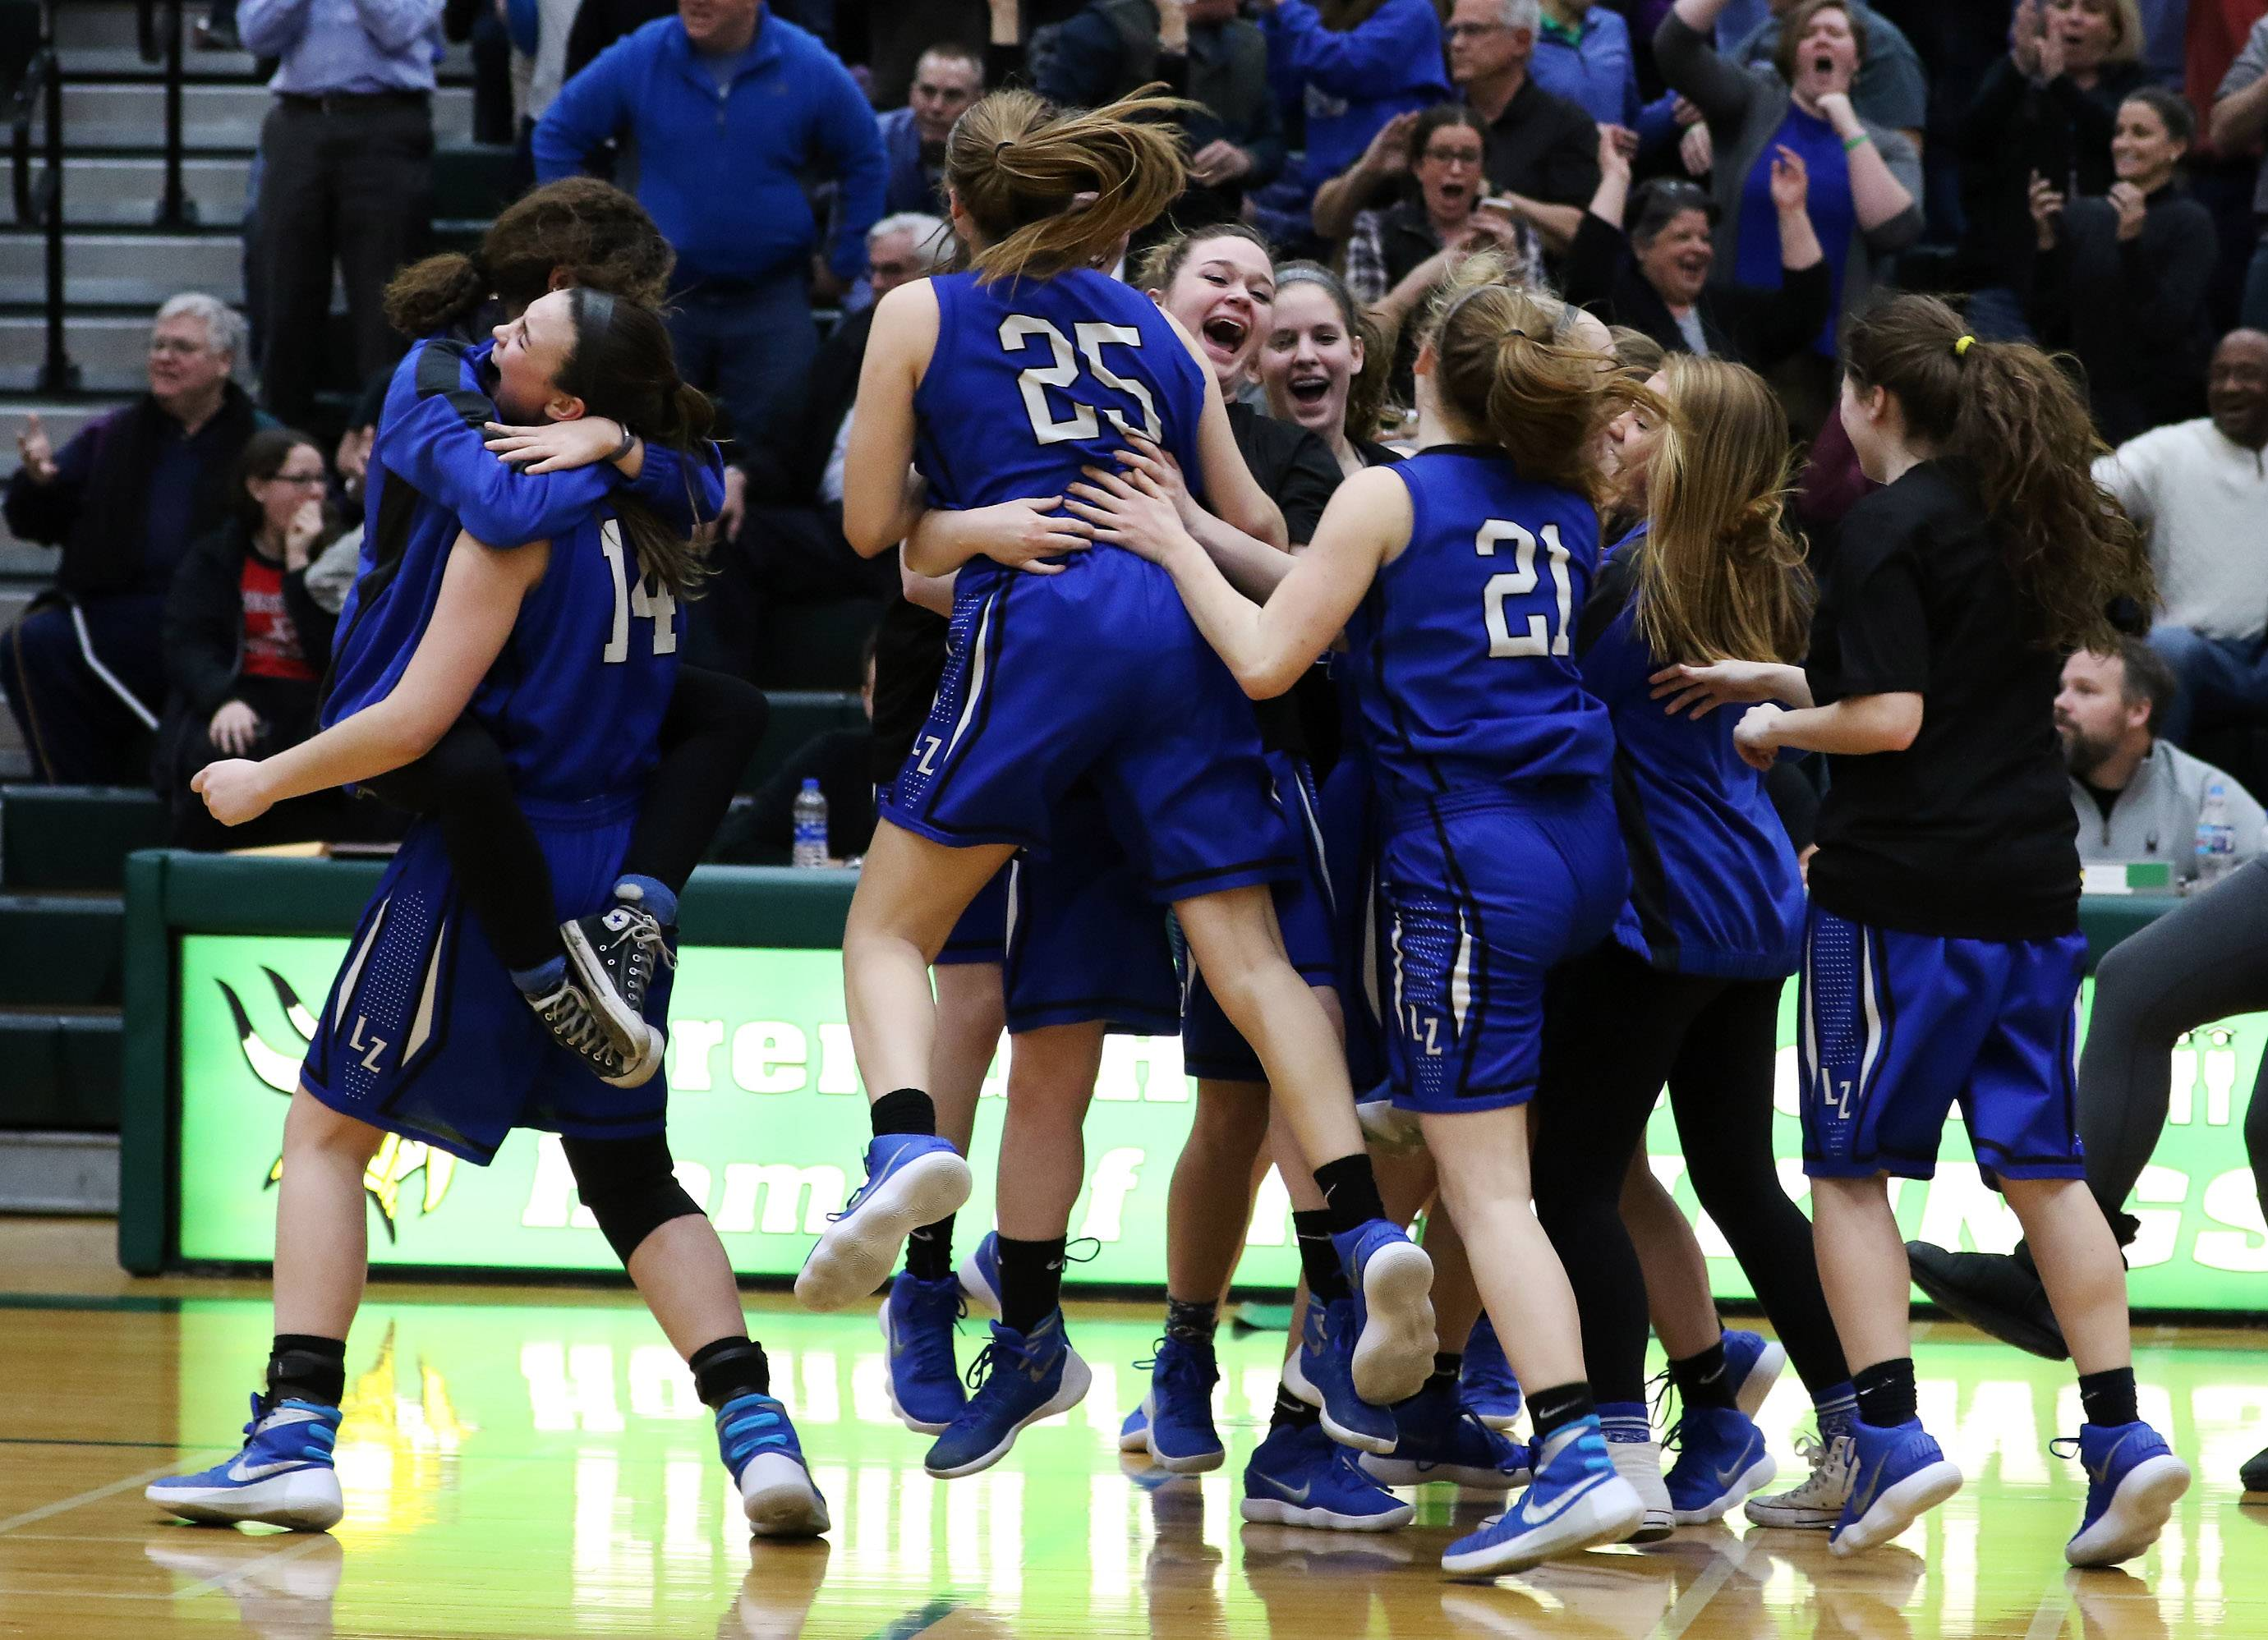 The Lake Zurich Bears celebrate after defeating Warren during the Class 4A girls basketball sectional final on Thursday at Fremd High School in Palatine.